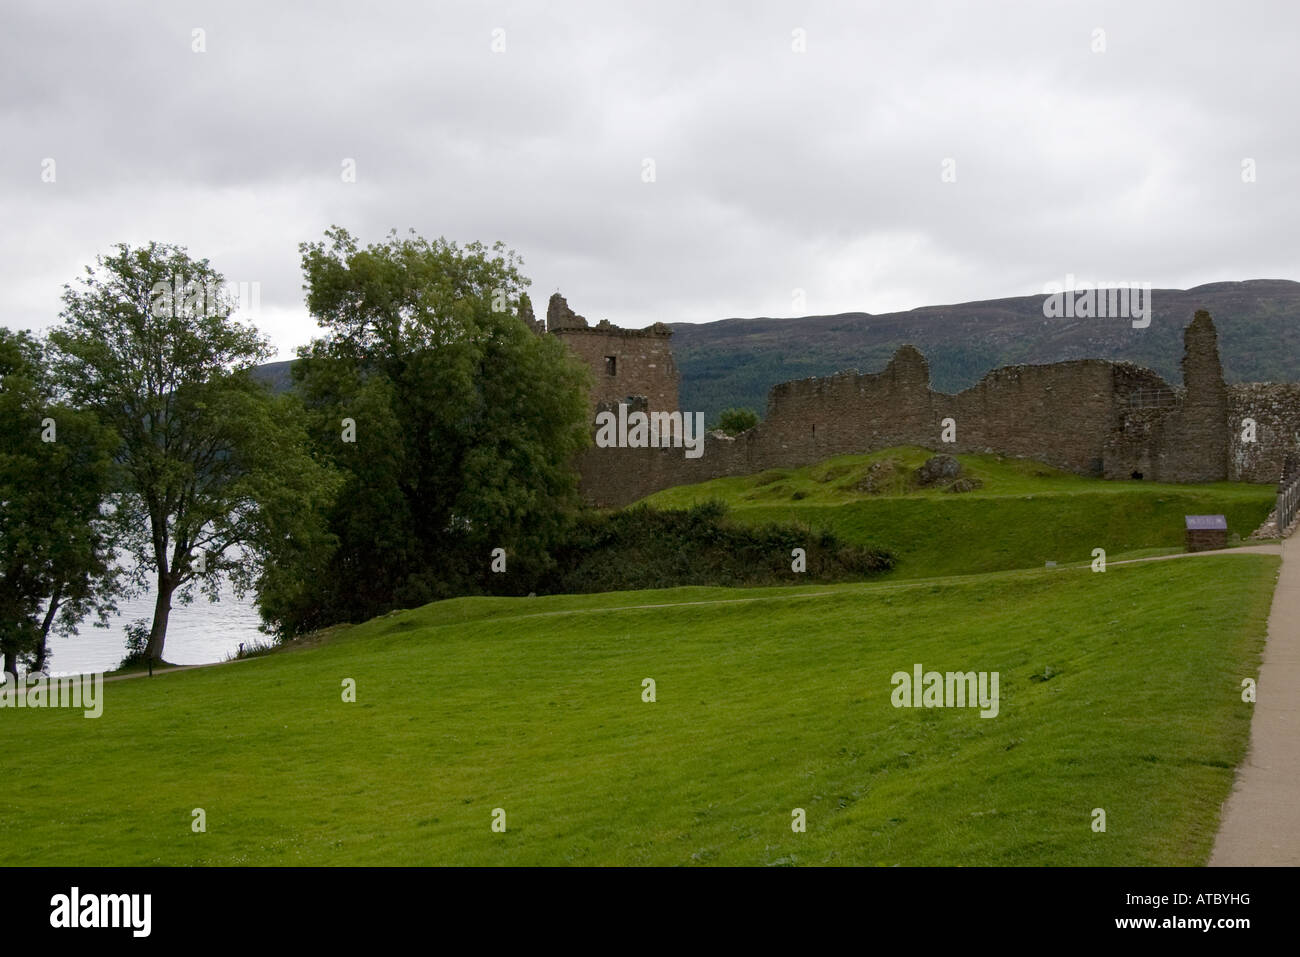 Picturesque Urquhart Castle, situated on Loch Ness, Scotland. - Stock Image